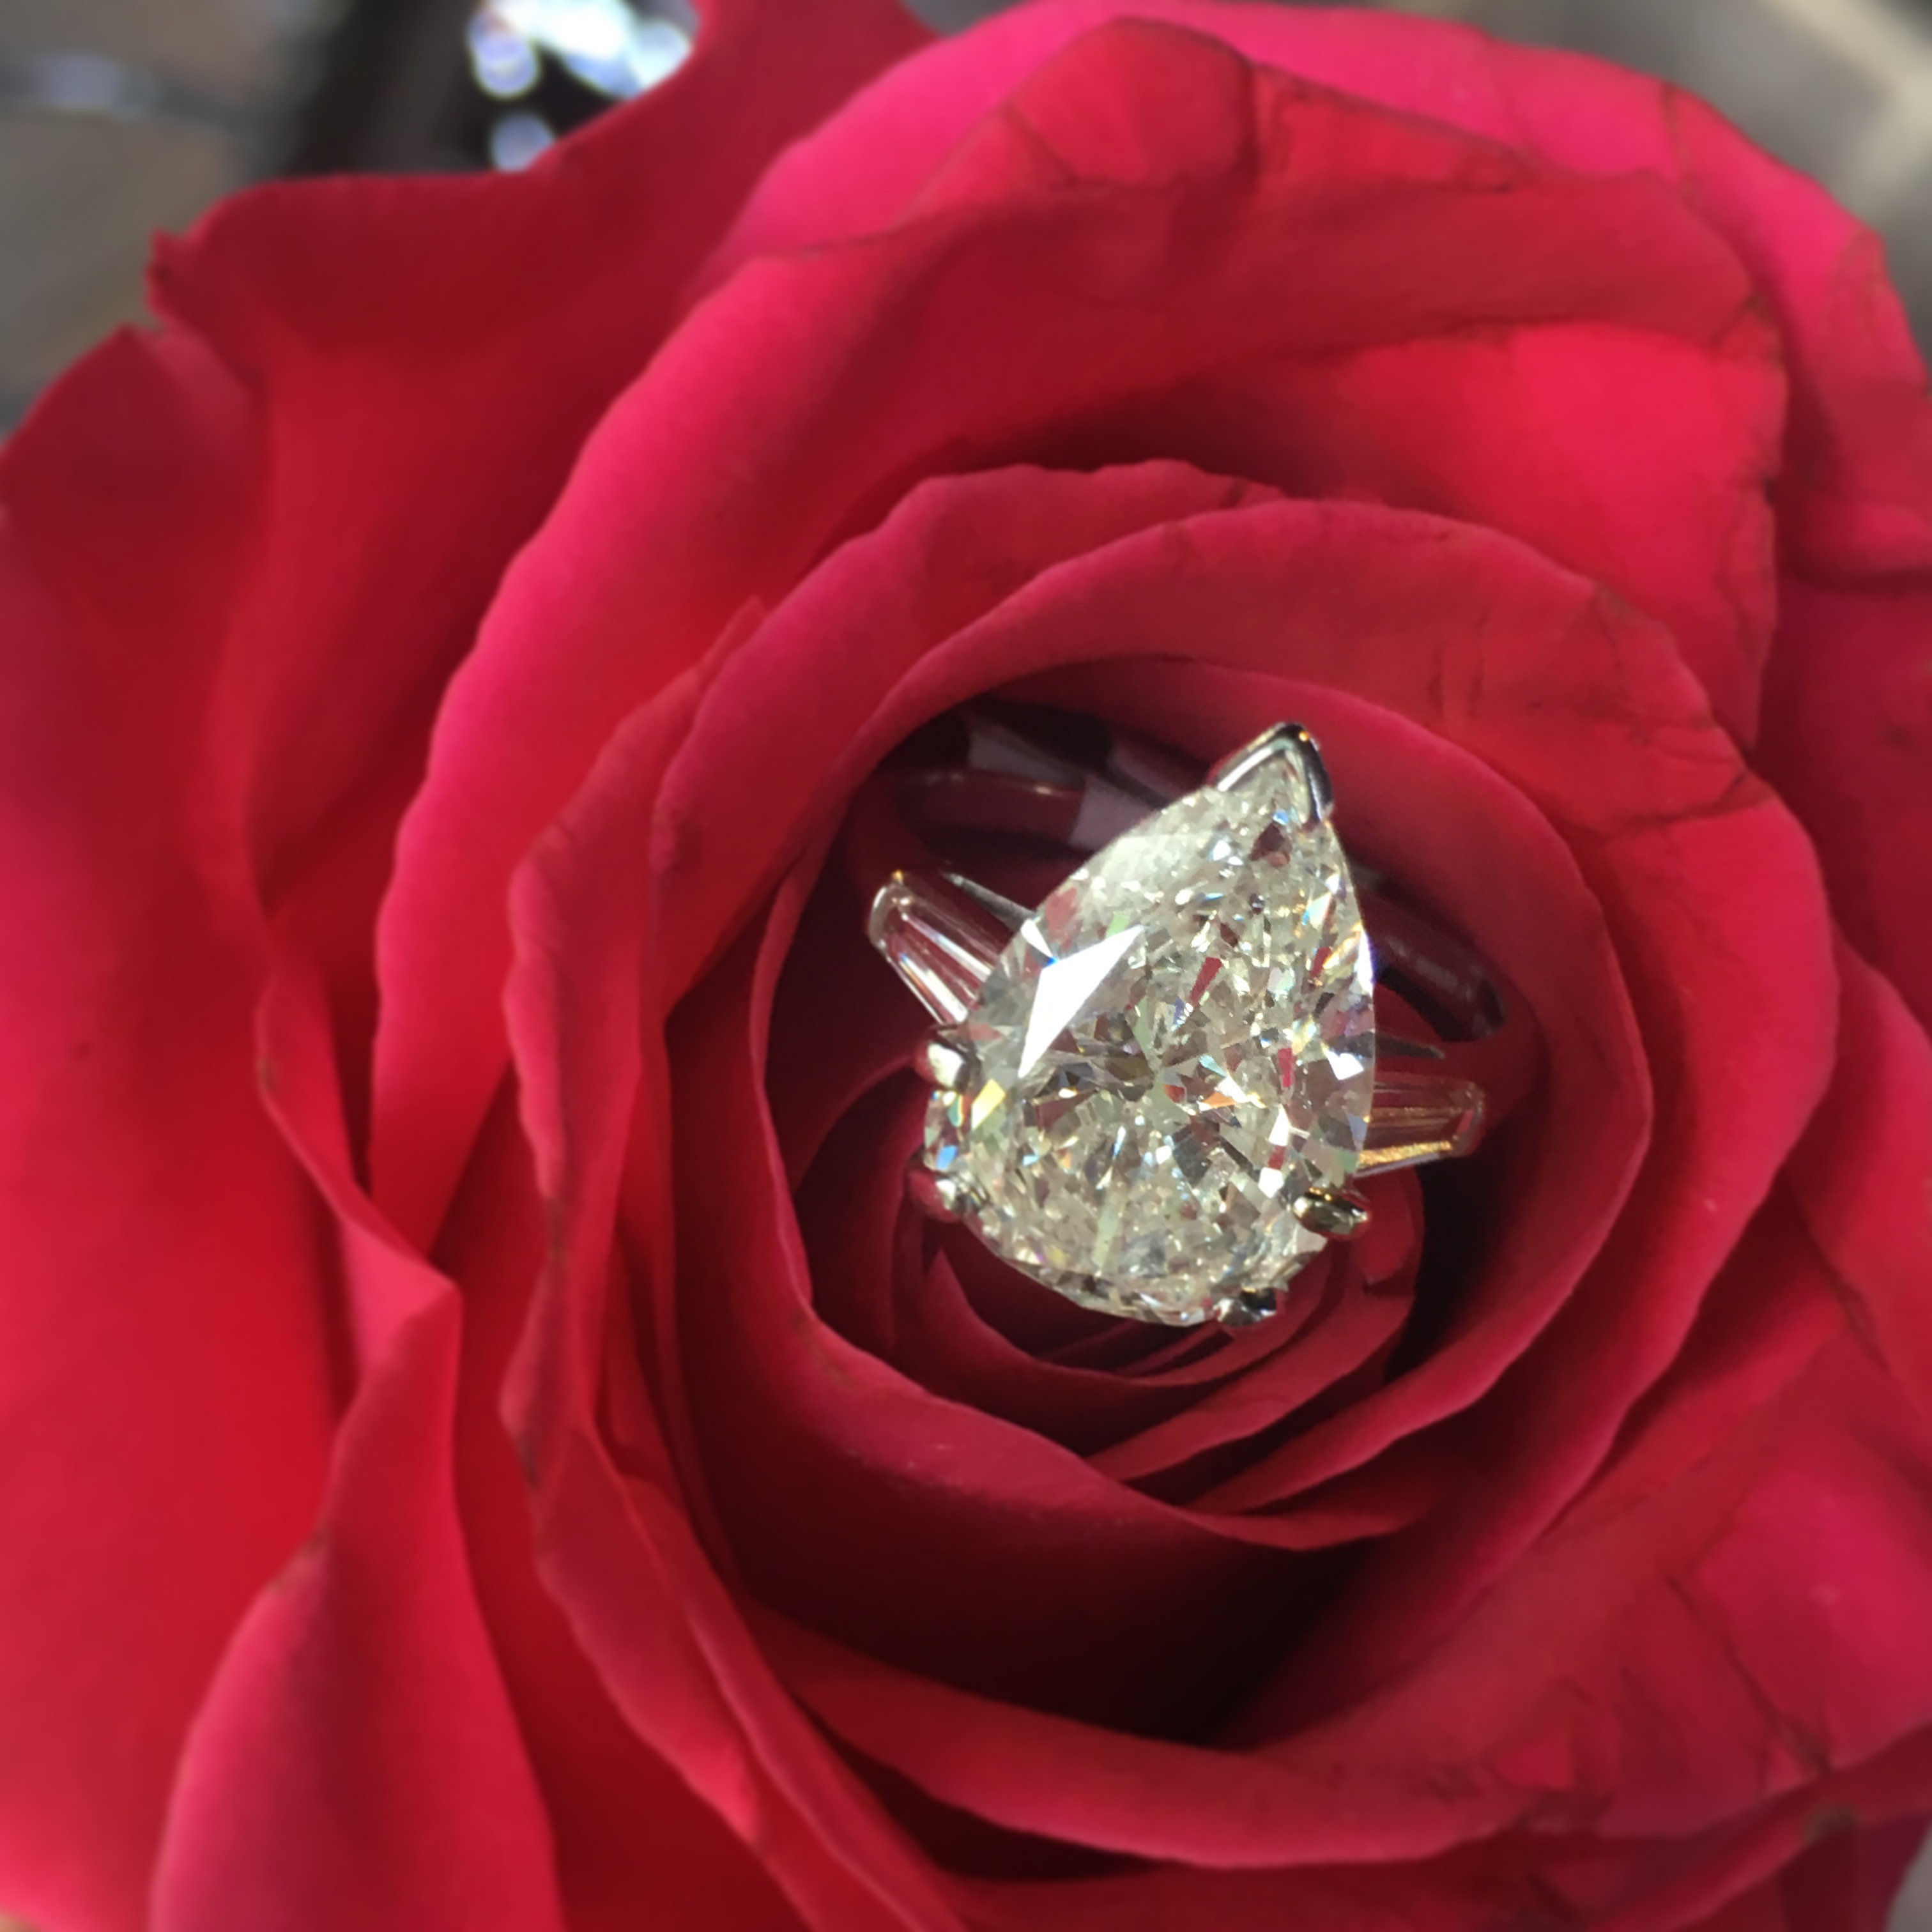 Special Valentine's Day Promotion on Select Luxury Jewelry